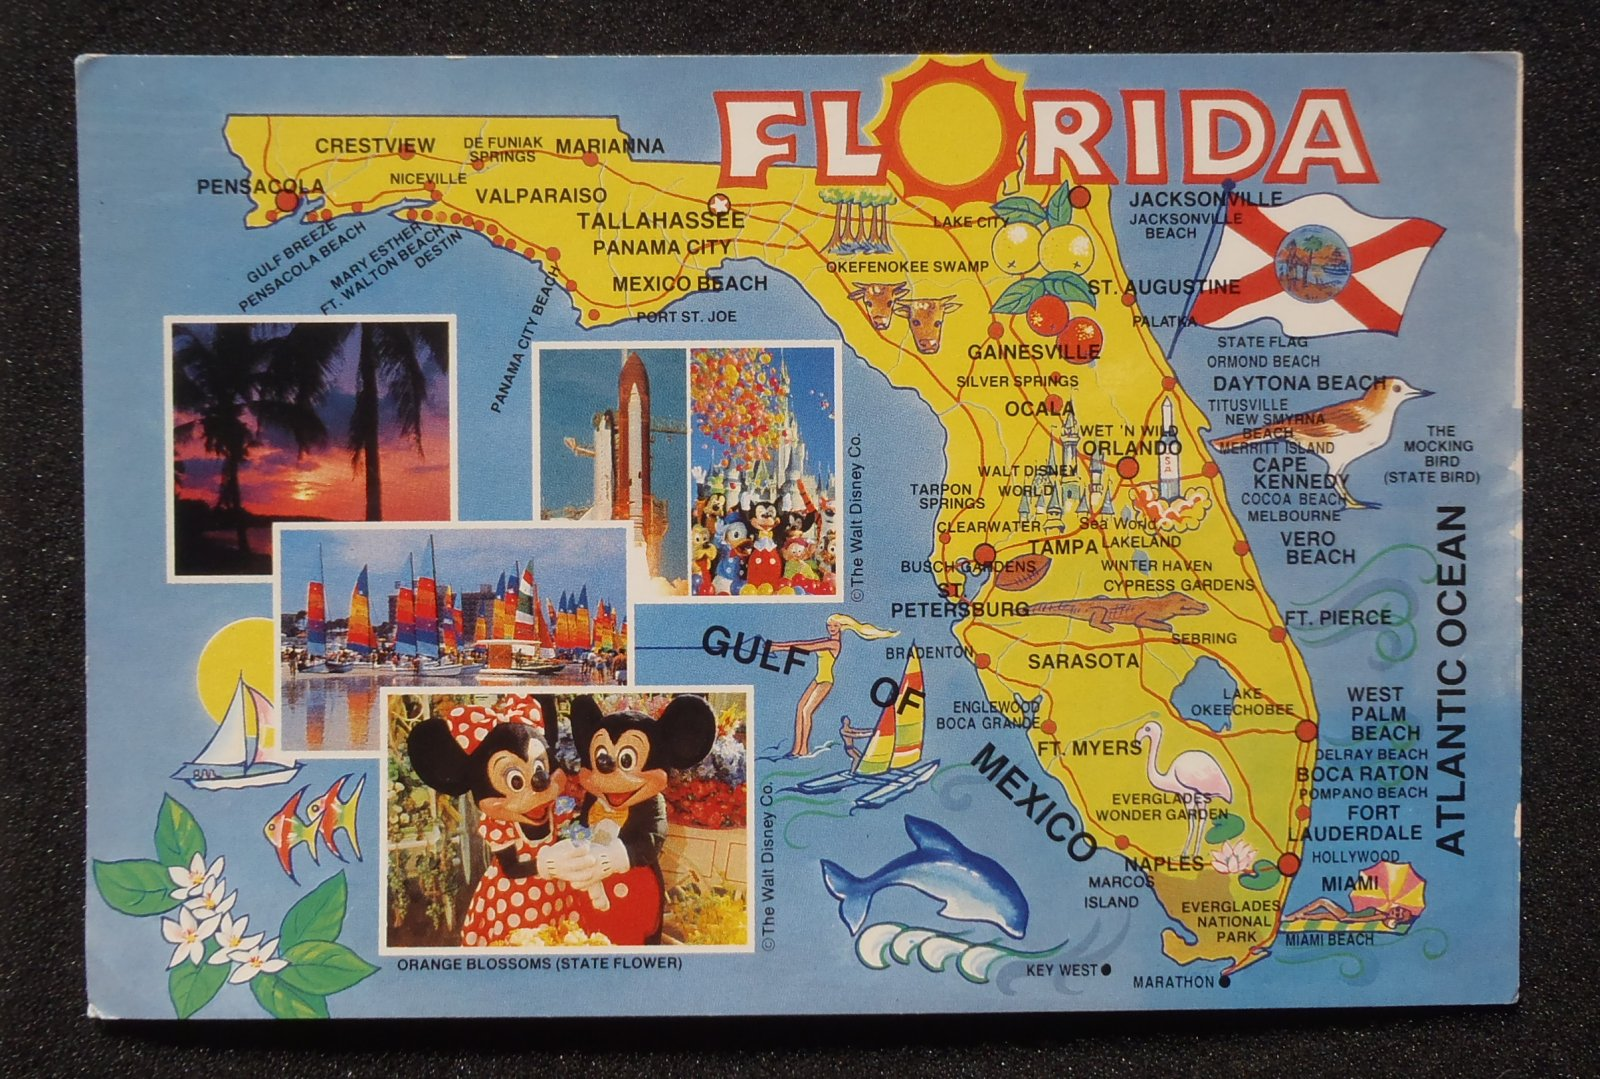 Download This Free Poster Of Famous US Landmarks ShareAmerica - Florida map showing marco island